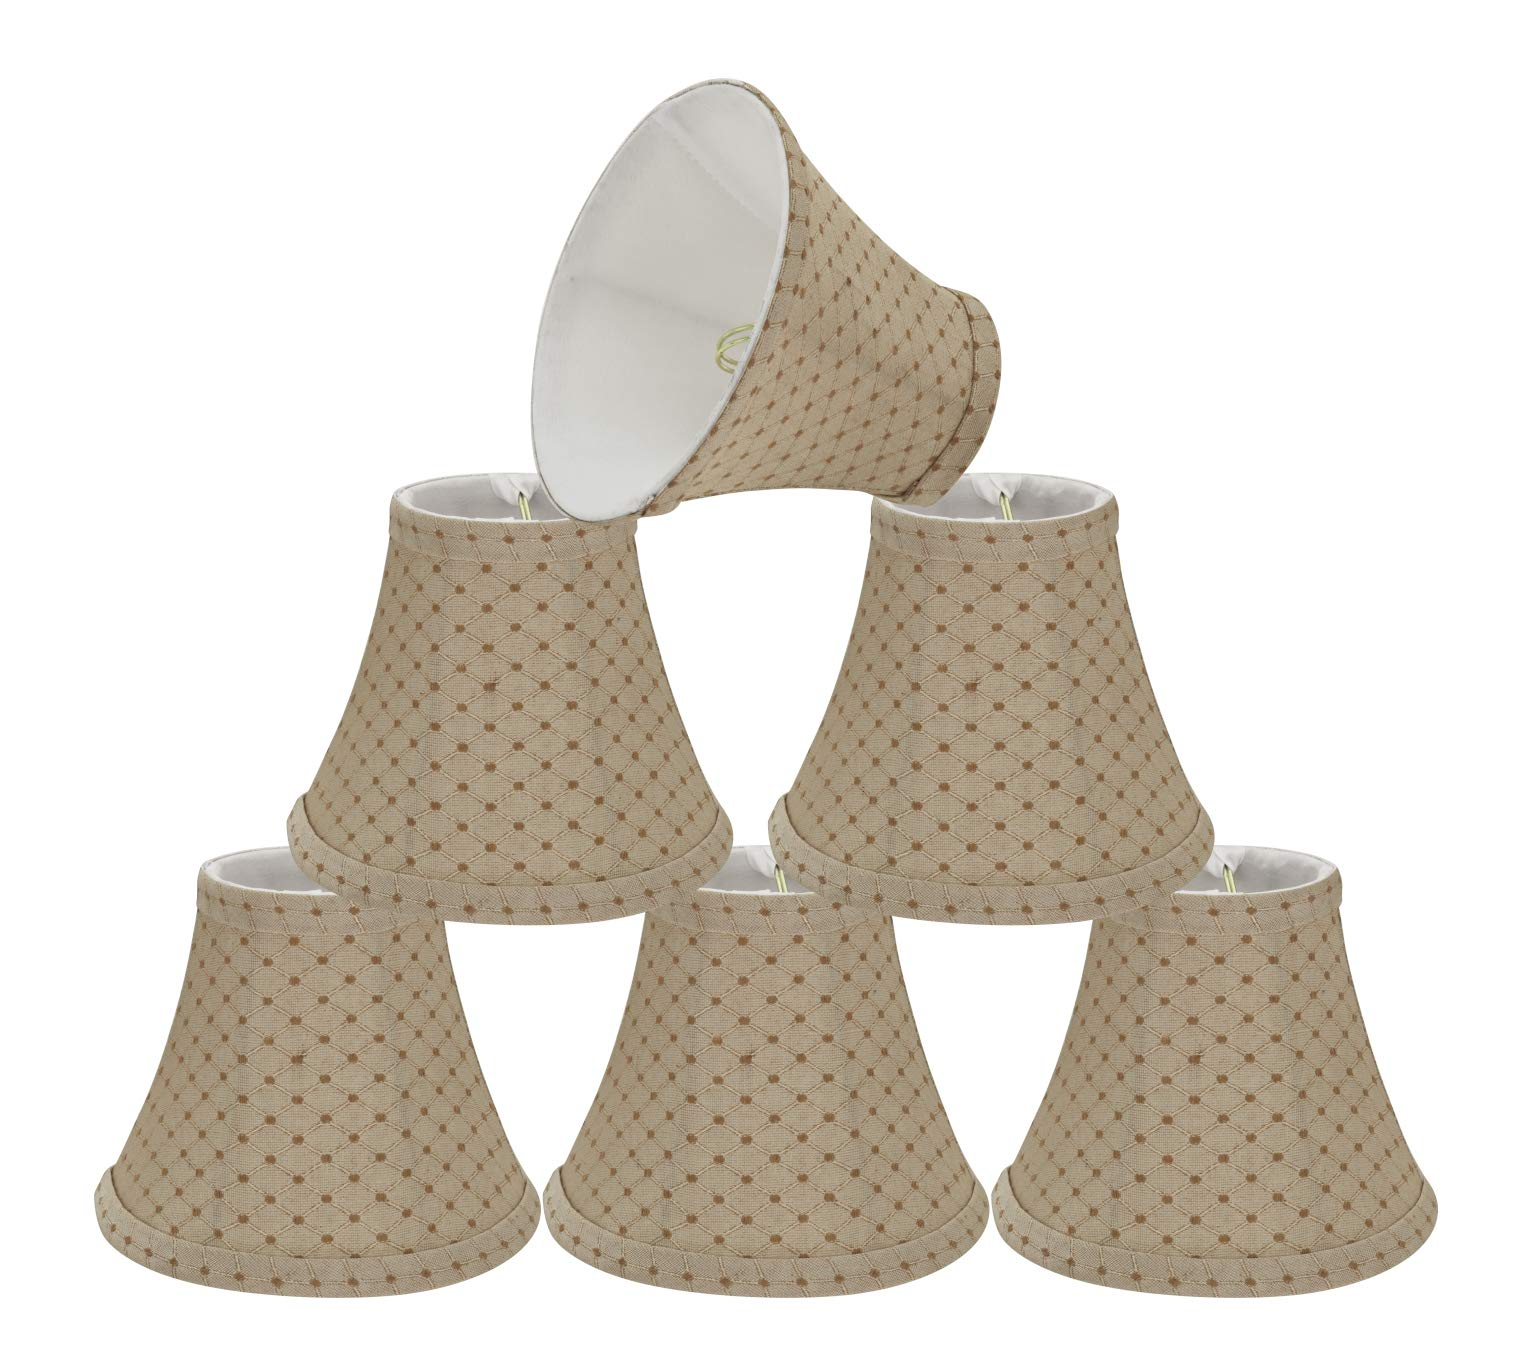 Aspen Creative 30072-6 Small Bell Shape Chandelier Set (6 Pack), Transitional Design in Beige, 6'' Bottom Width (3'' x 6'' x 5'') Clip ON LAMP Shade